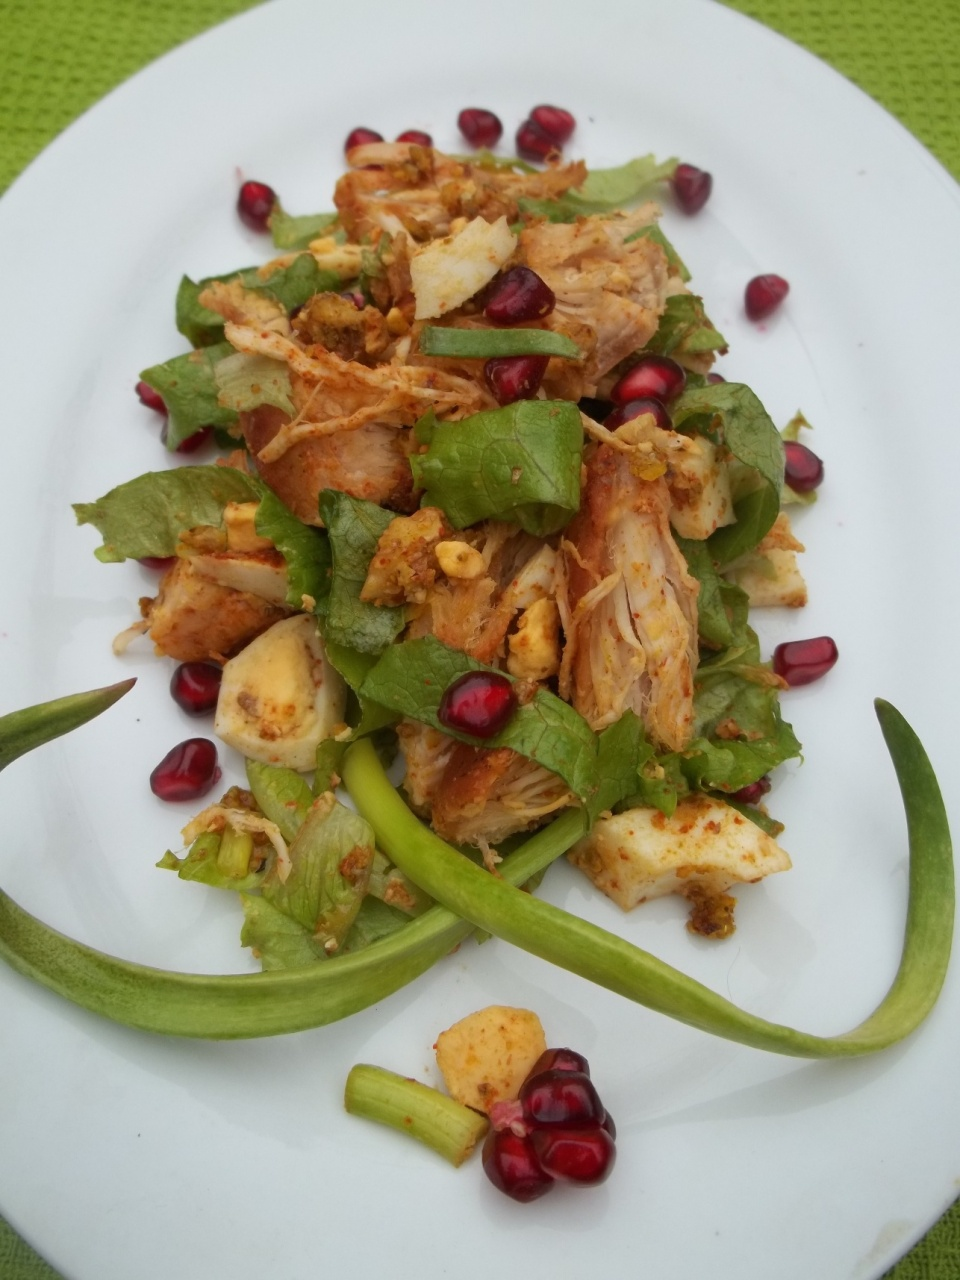 Chicken Salad with Walnuts ready for serving - Copy